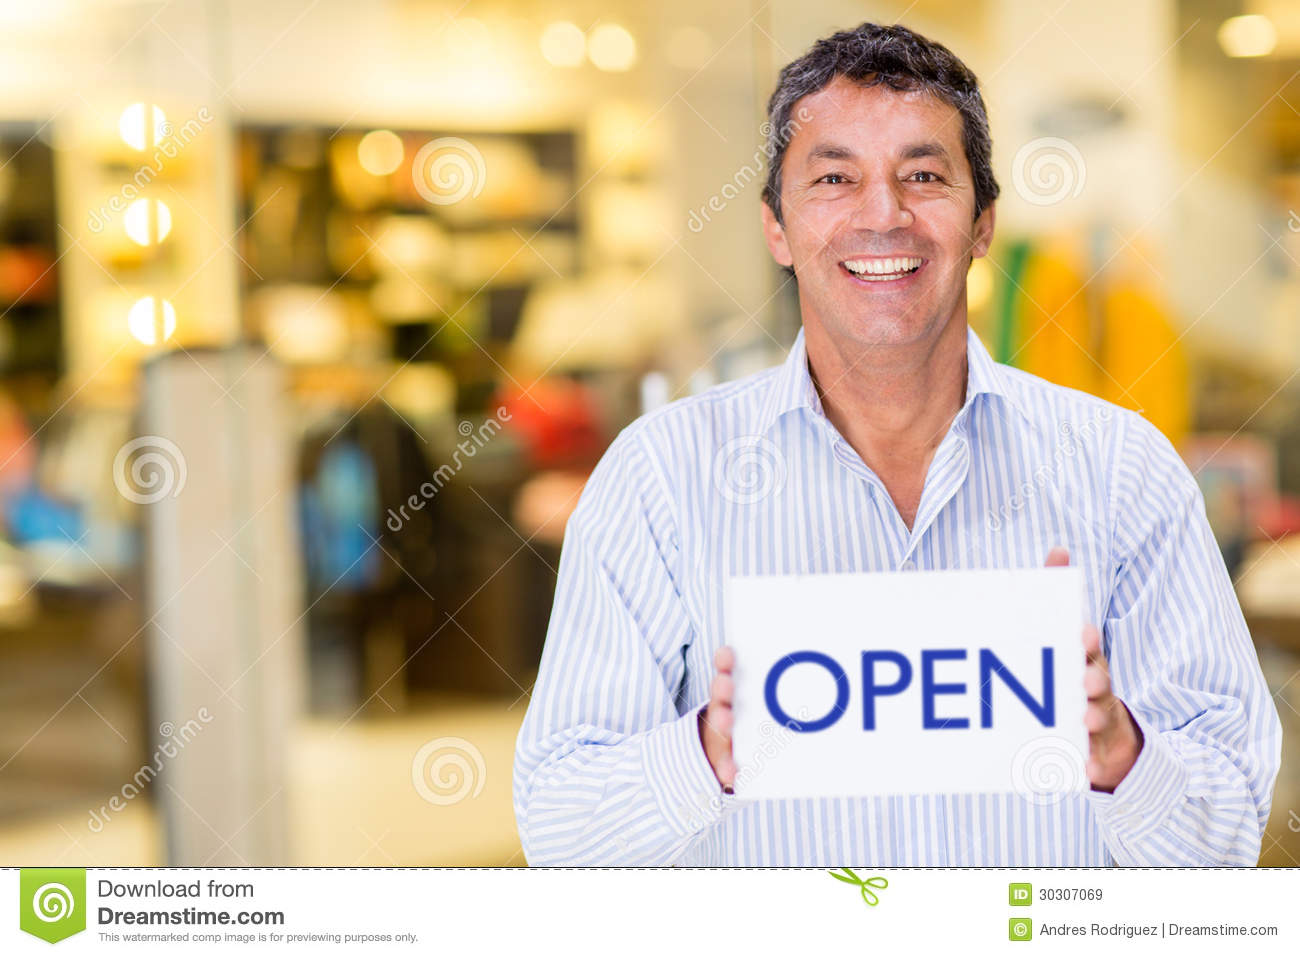 Business Owner With An Open Sign Royalty Free Stock Images ...